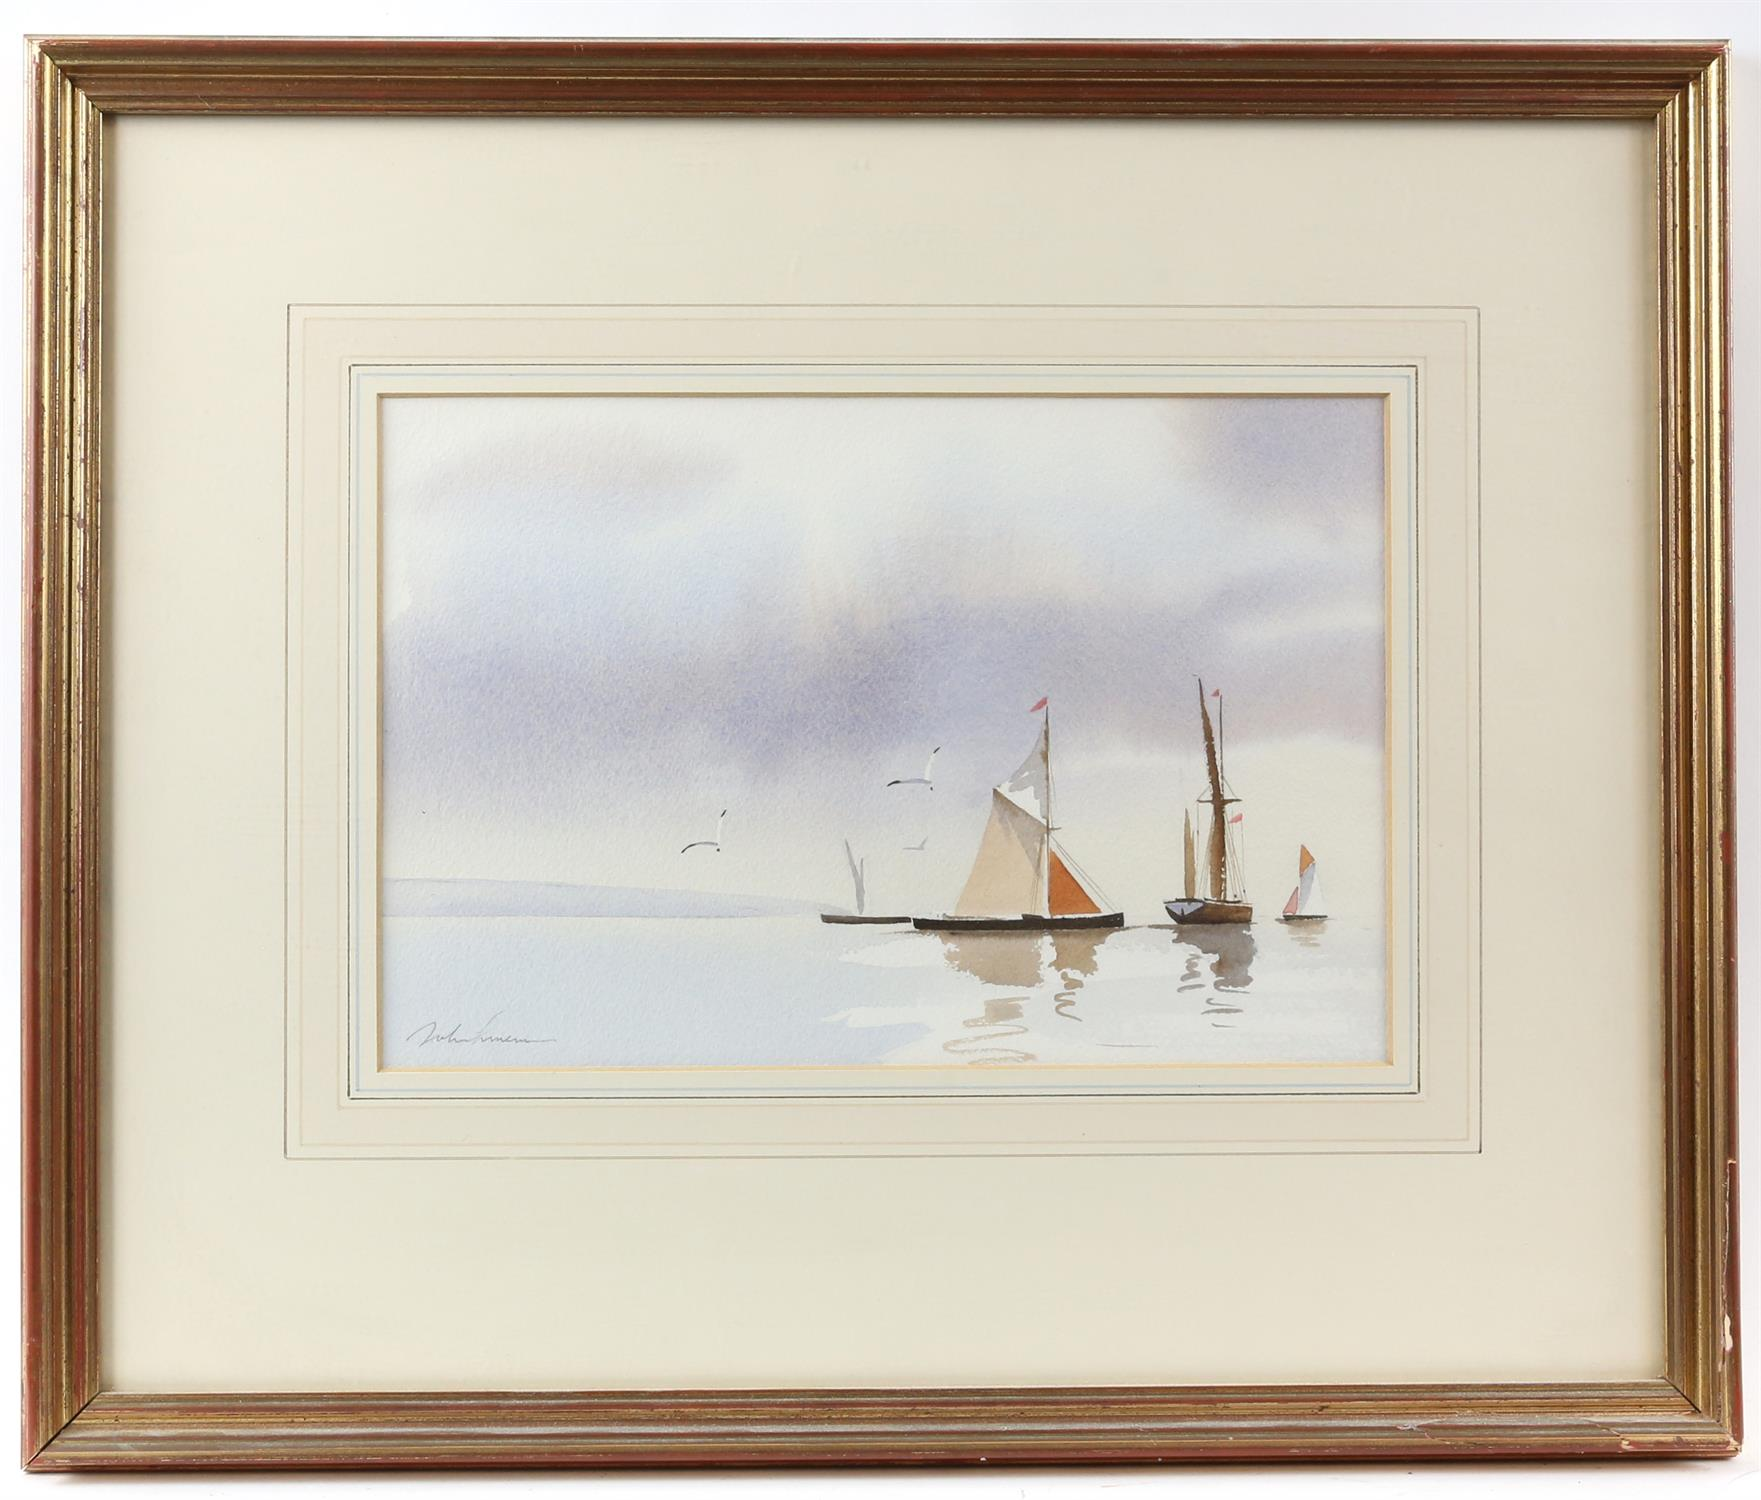 Three contemporary maritime watercolours, yachts at sea, signed indistinctly lower left. - Image 5 of 8